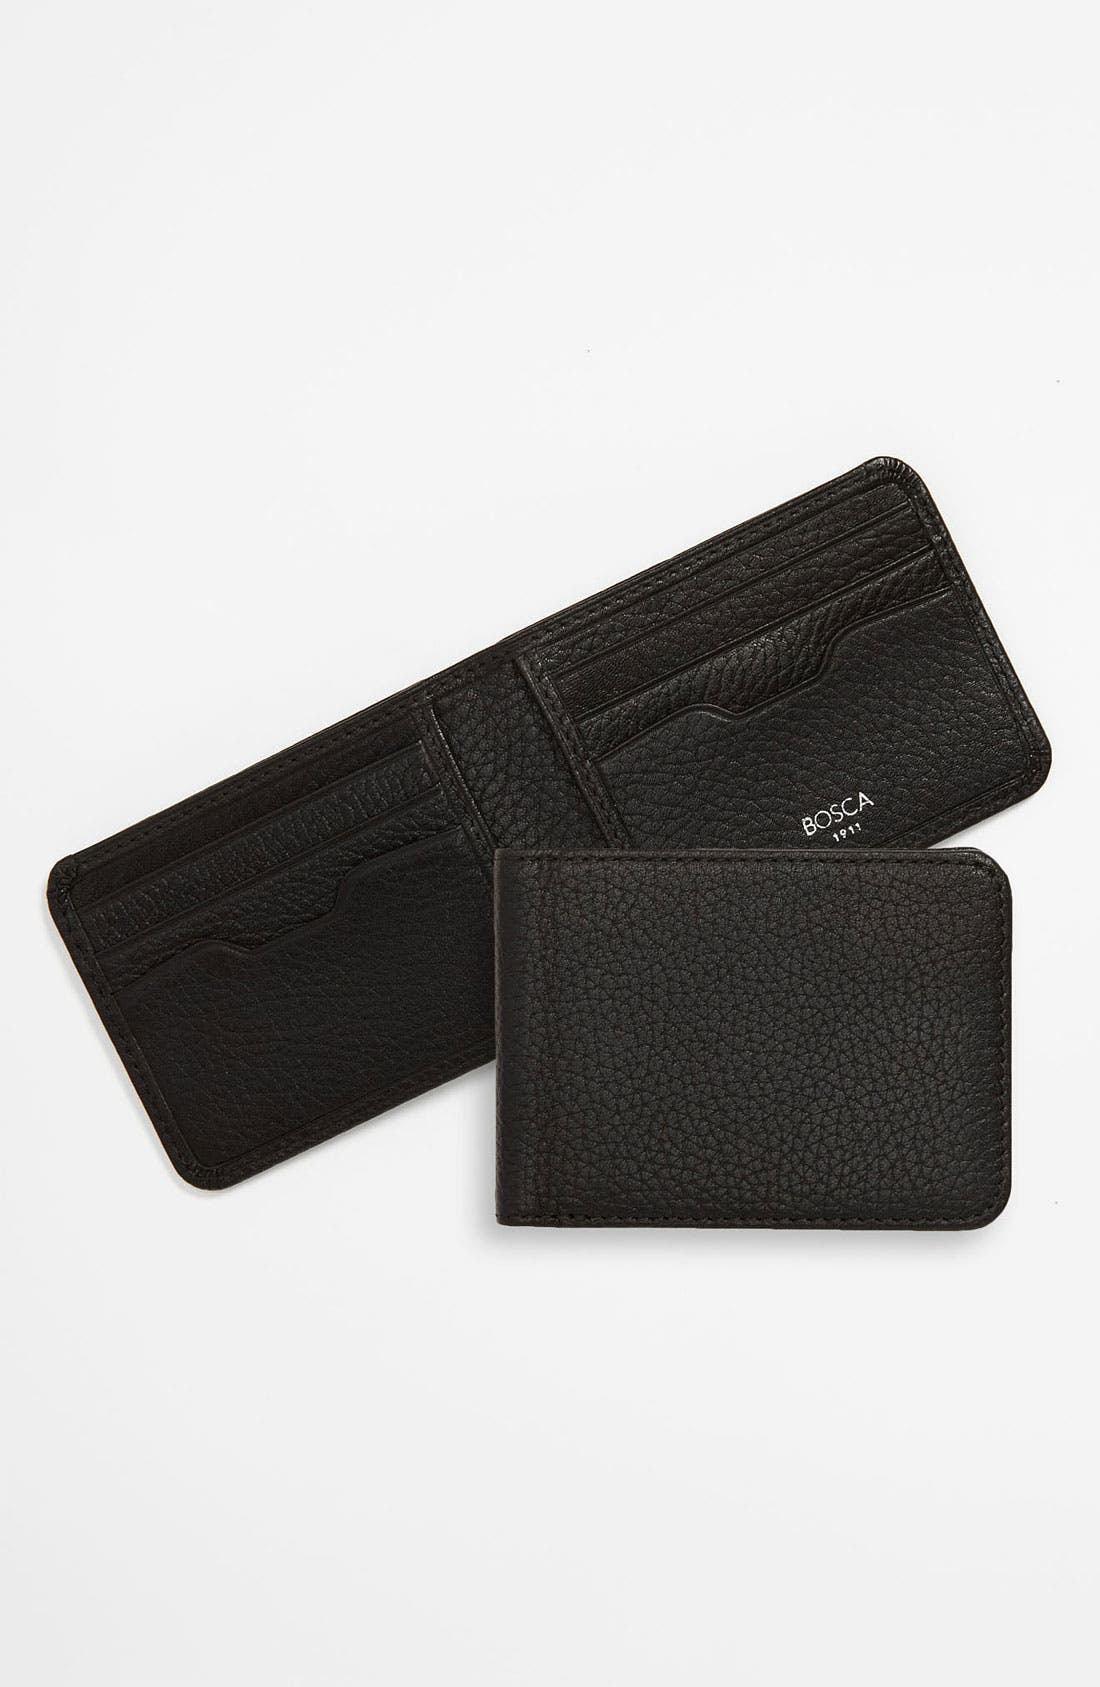 Main Image - Bosca Small Leather Bifold Wallet